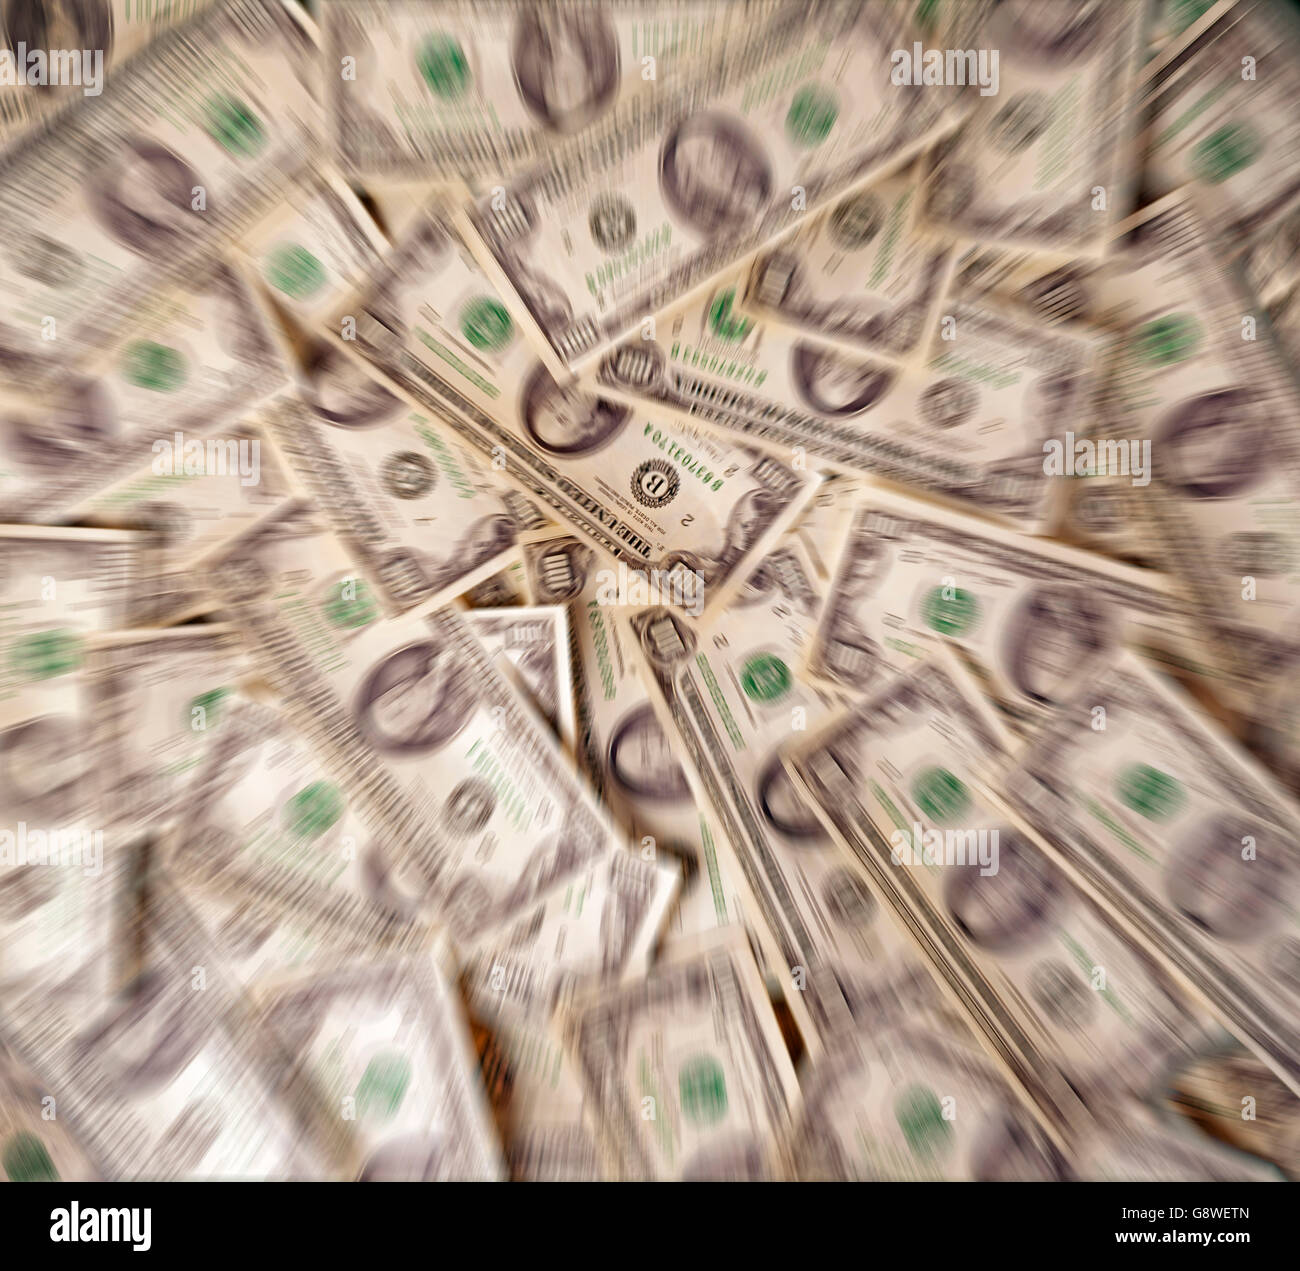 Money displayed on table as if looked through an addicts mind and hallucinating - Stock Image